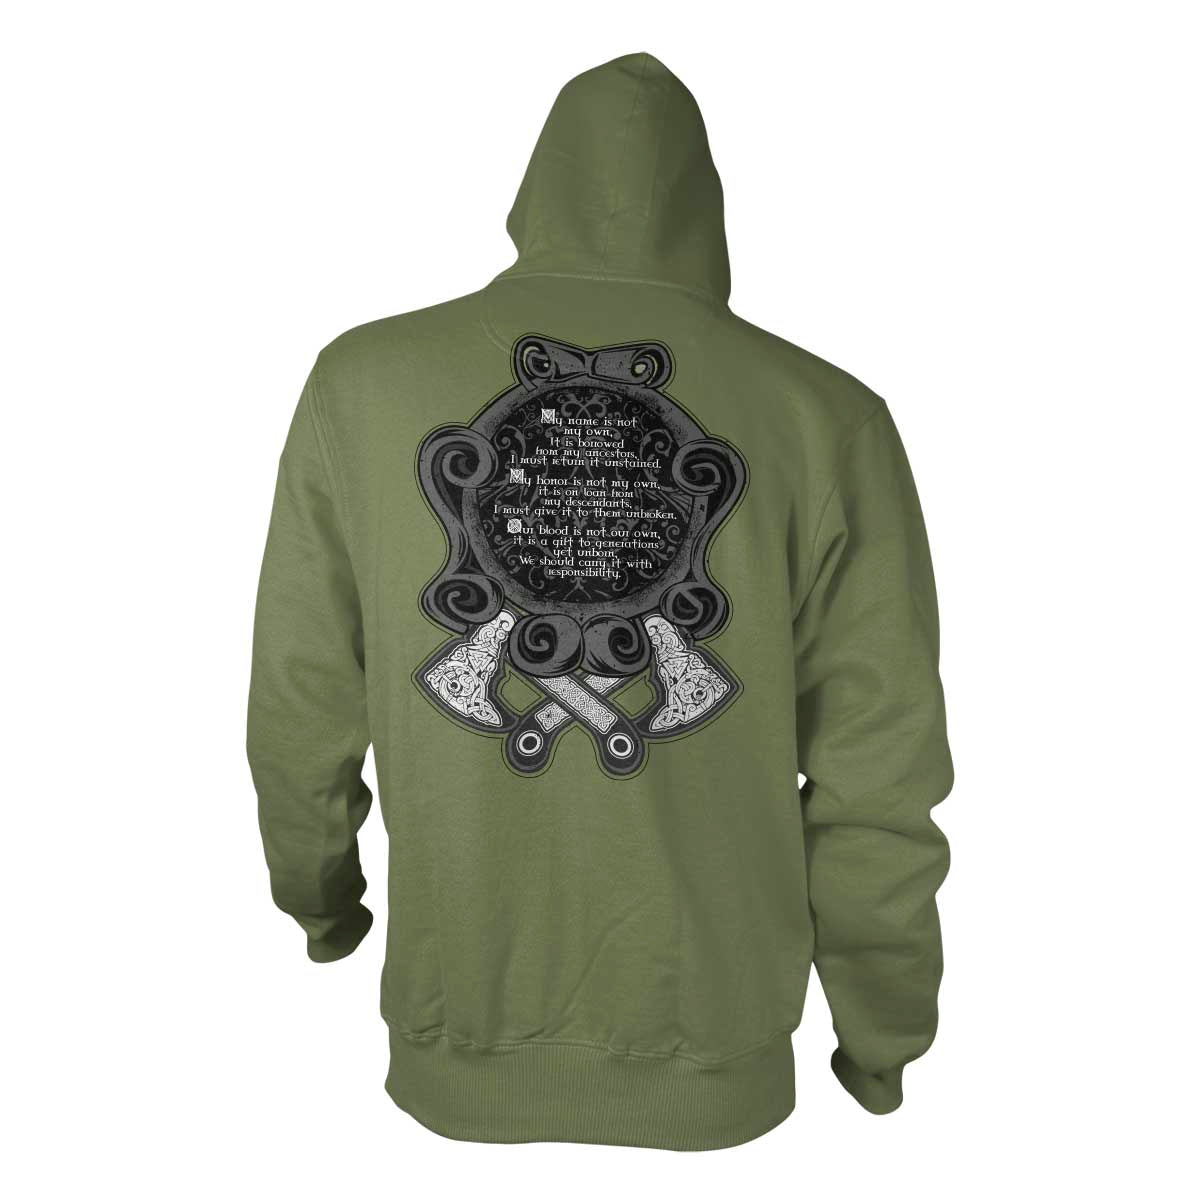 Not My Own - Hoodie - Military Green - T-Shirts - Pipe Hitters Union